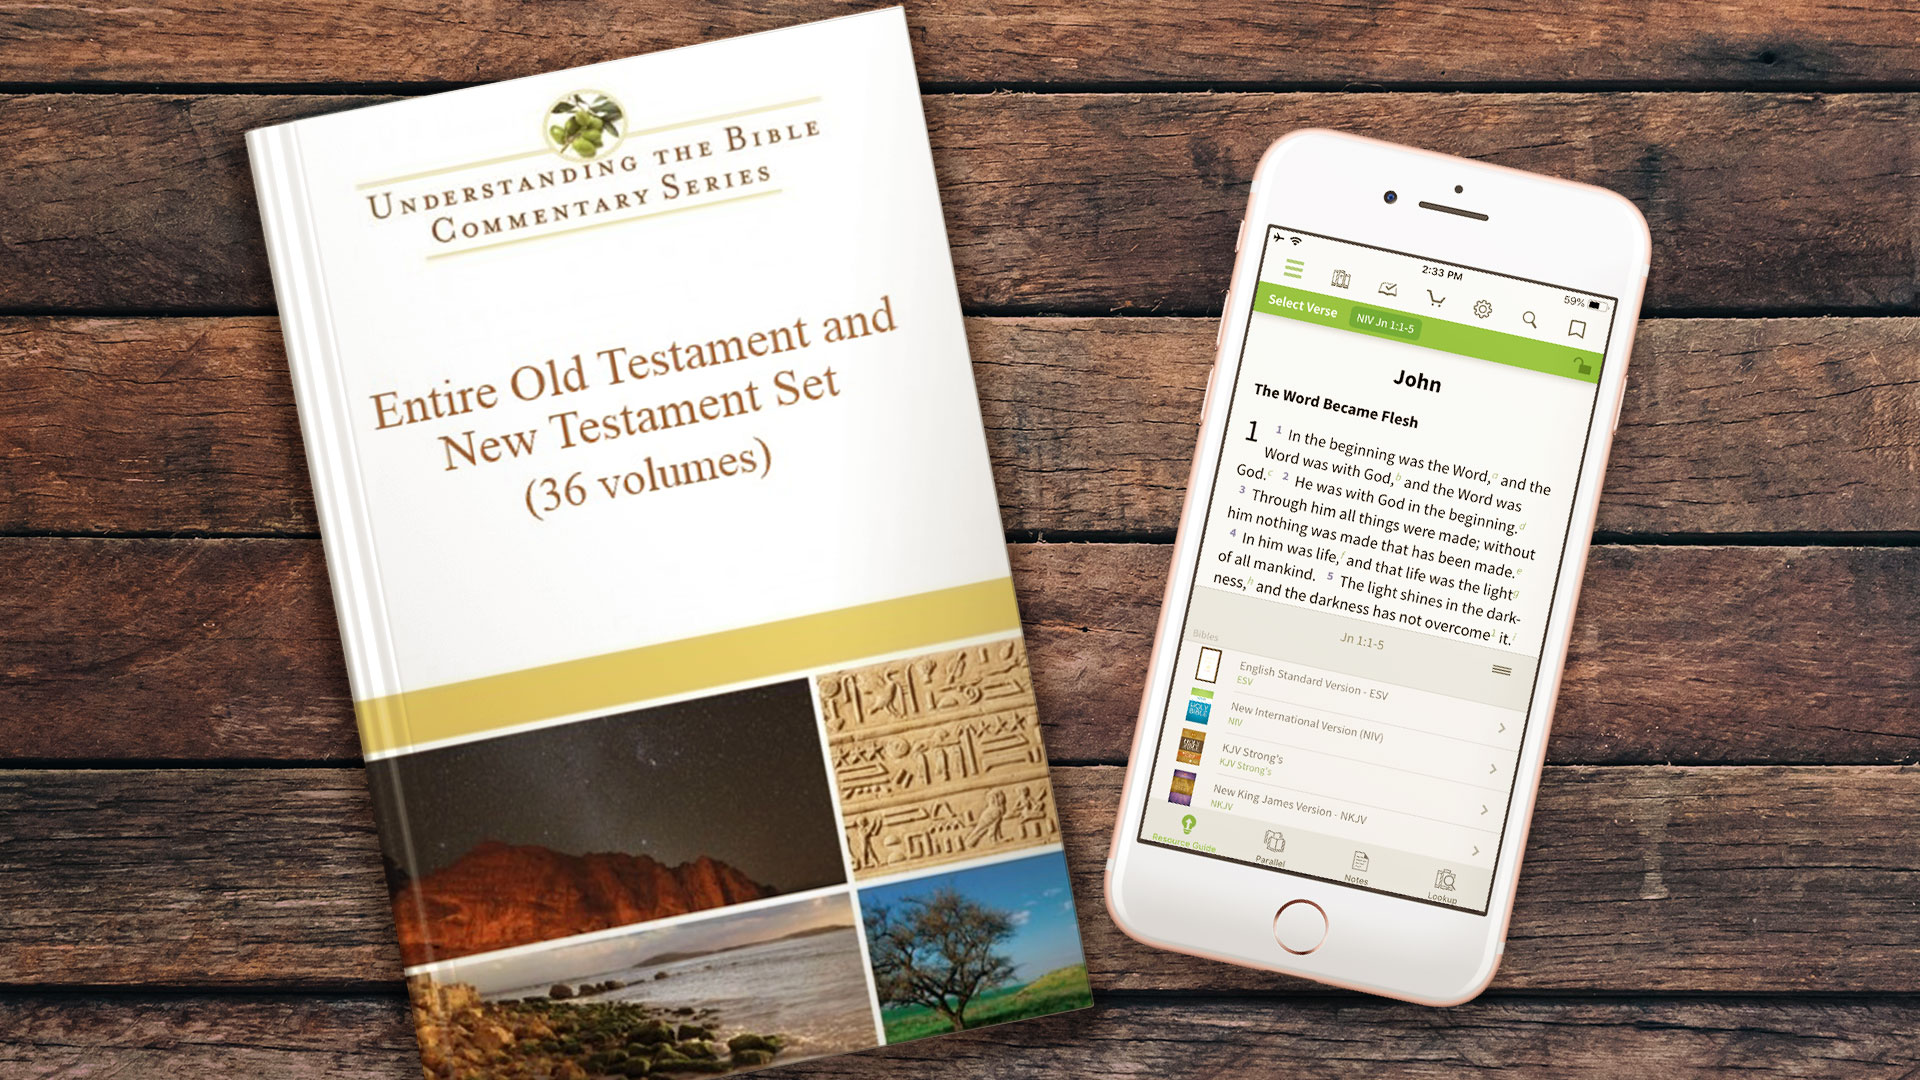 Understanding the Bible Commentary